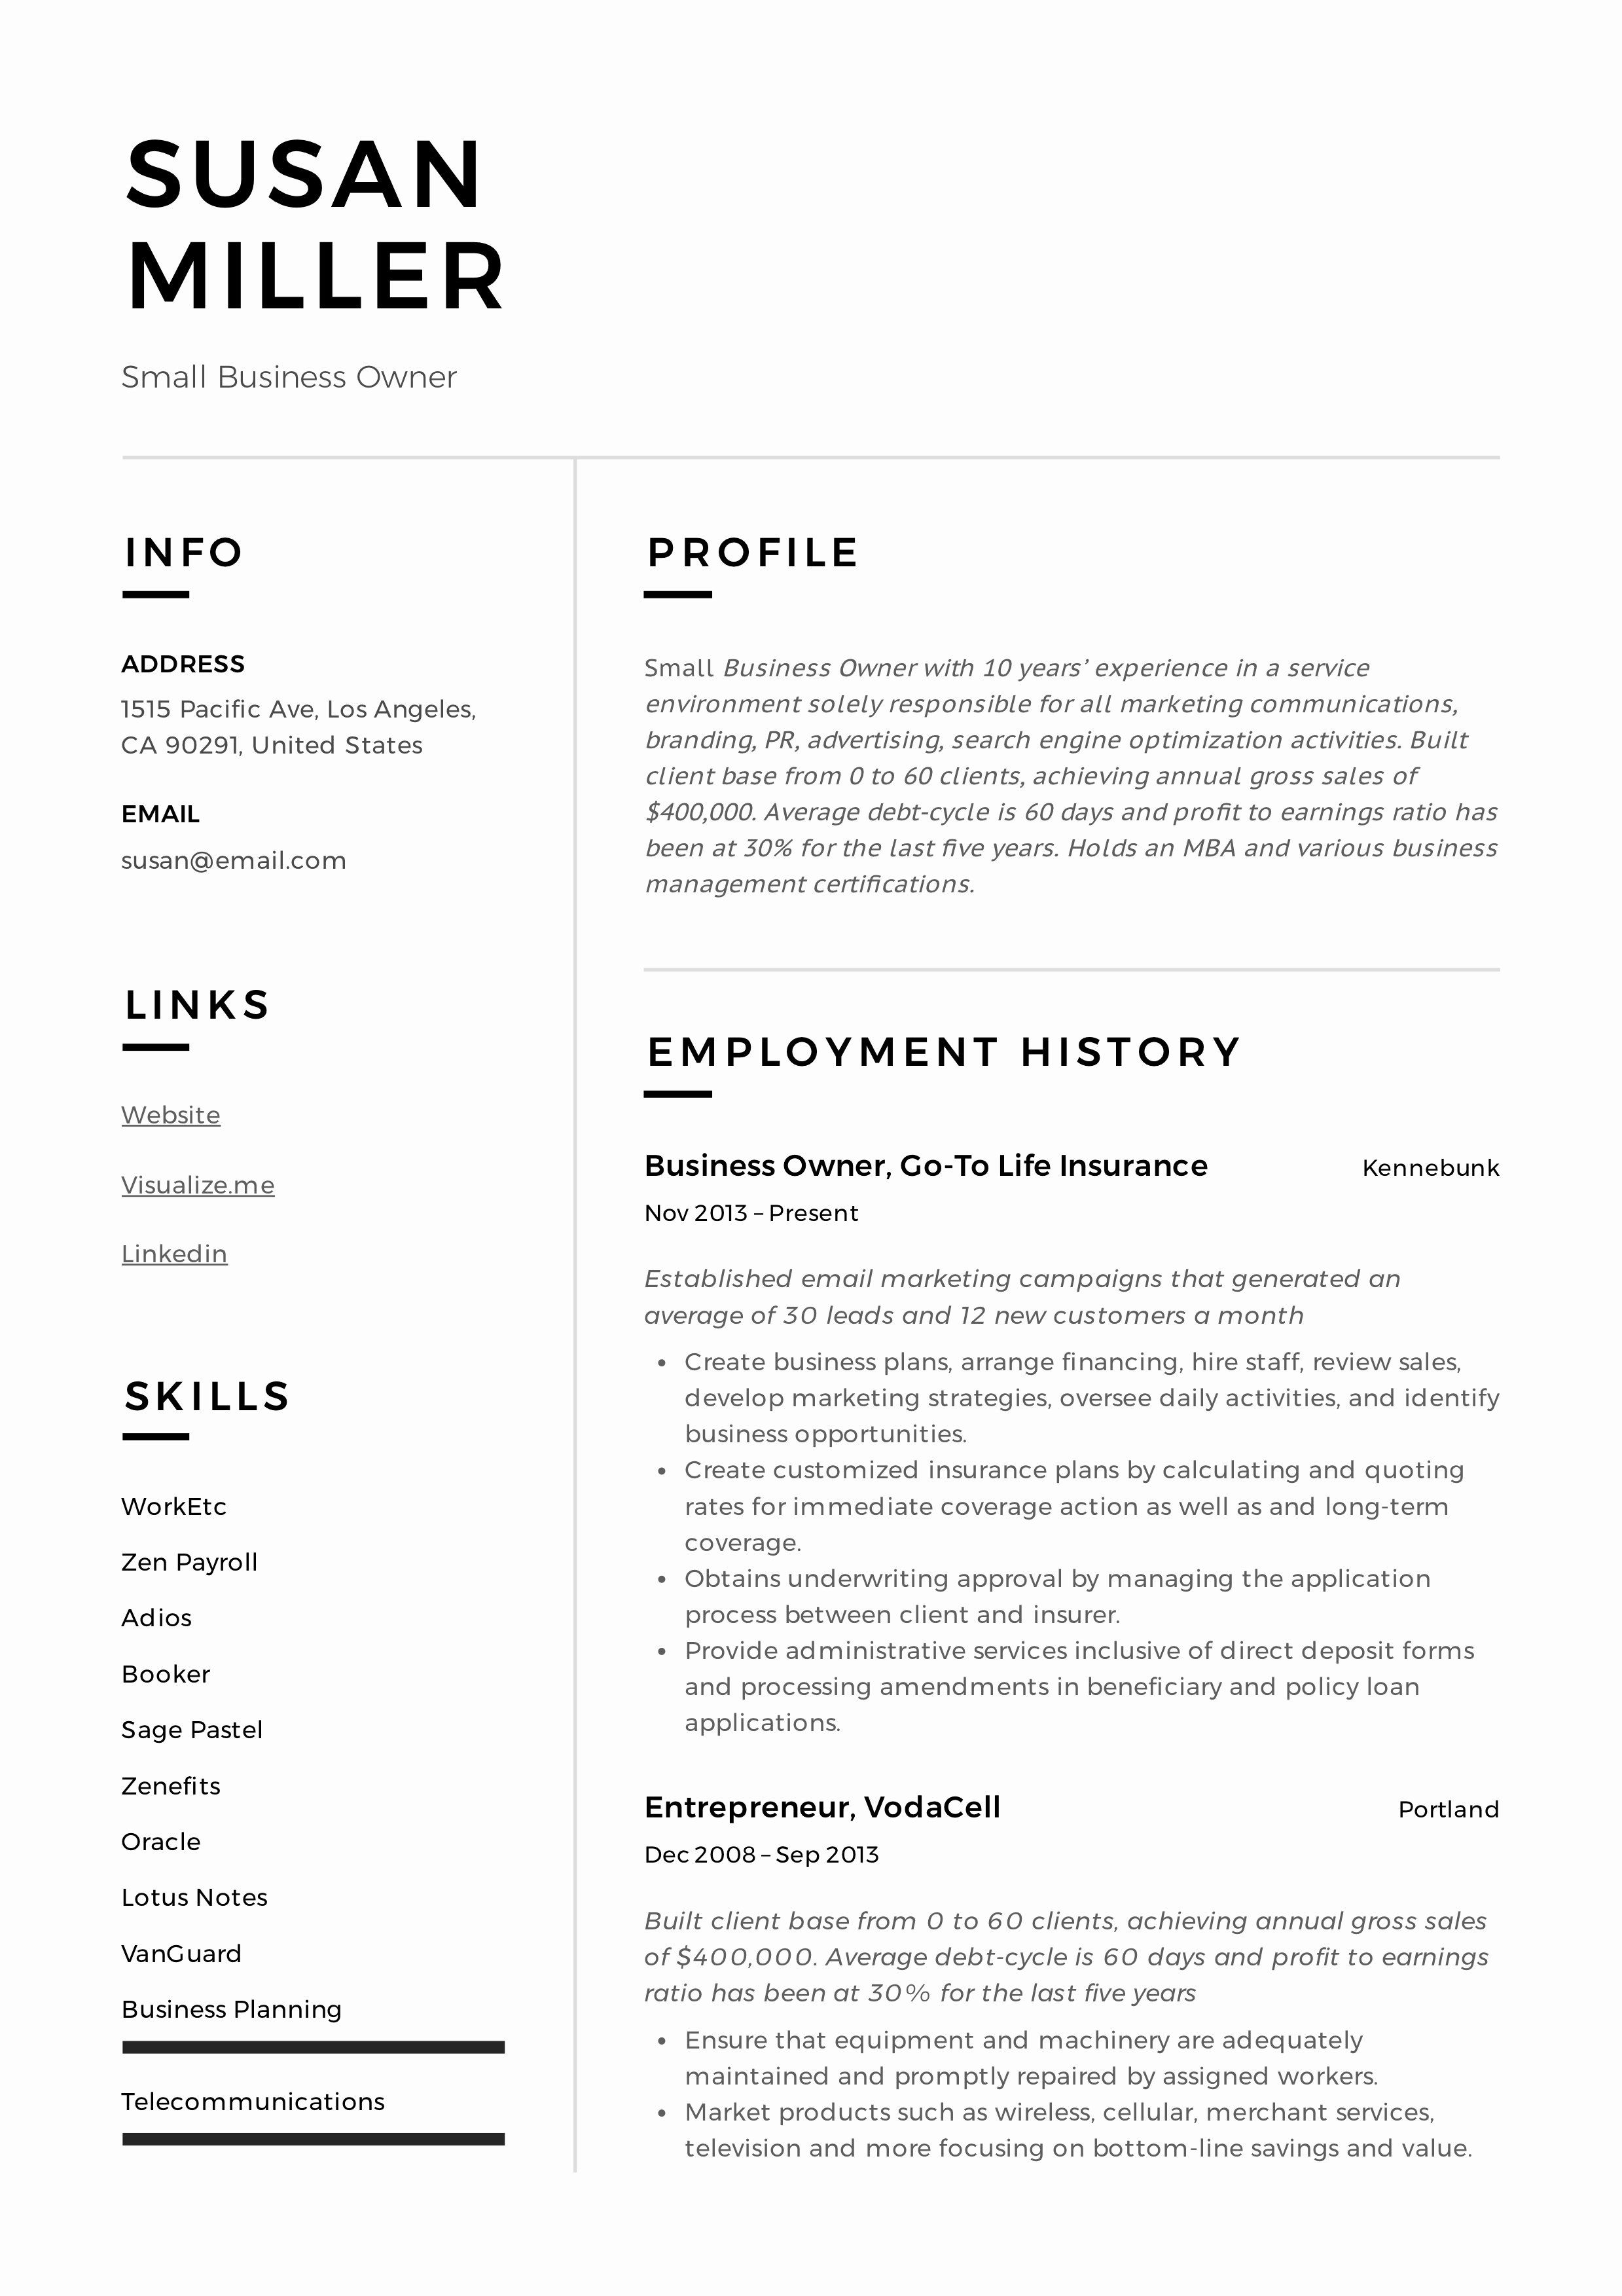 40 Small Business Owner Resume in 2020 Resume guide